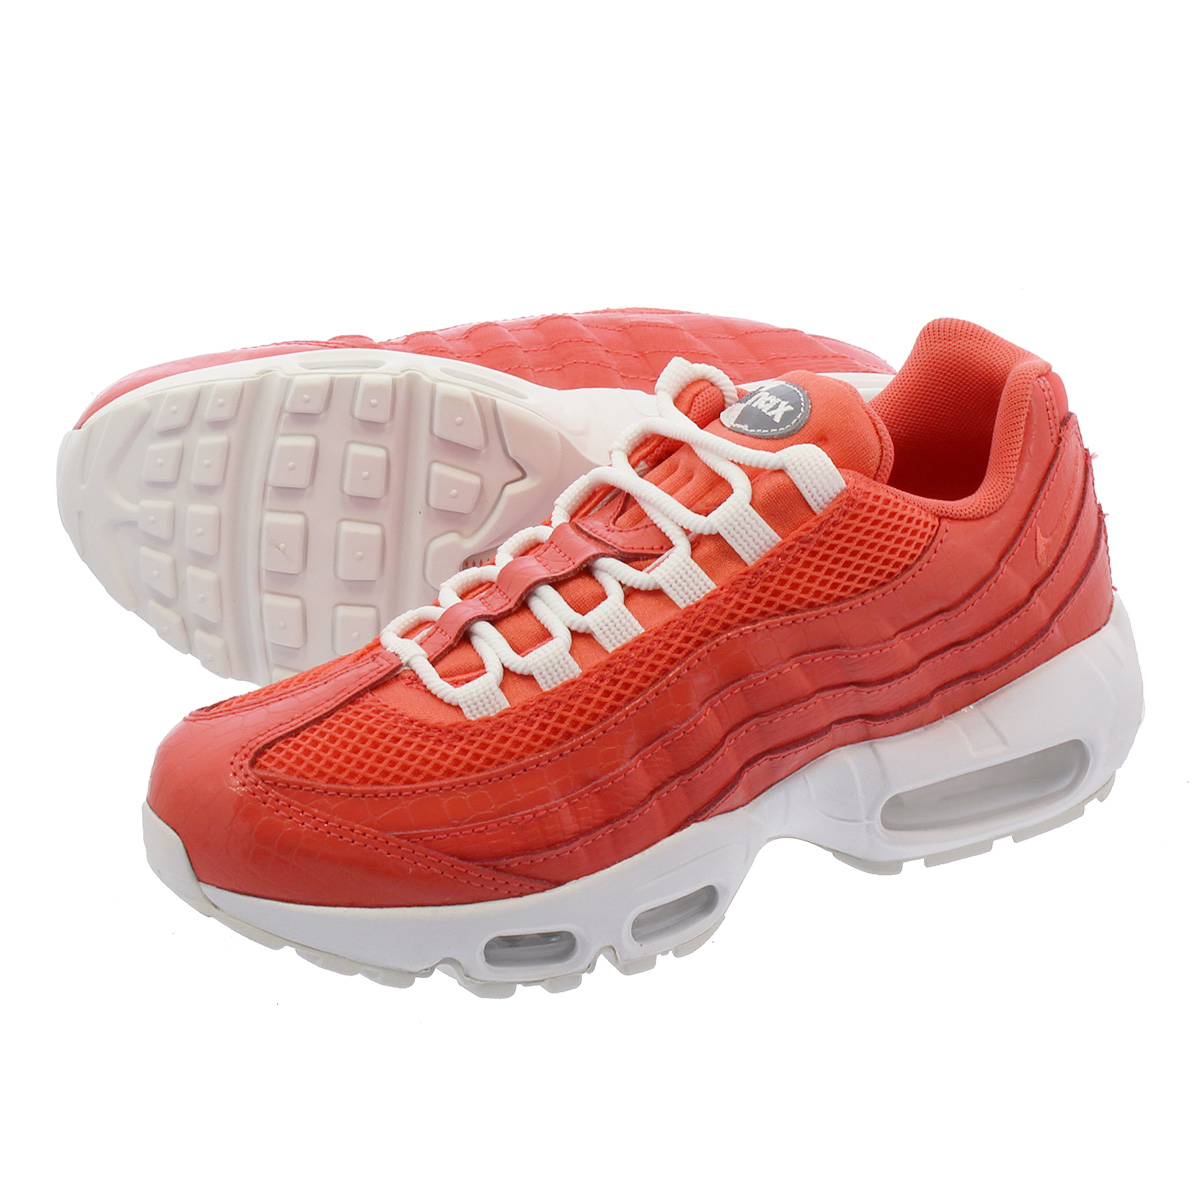 the latest 80800 c56d4 NIKE WMNS AIR MAX 95 PRM Nike women Air Max 95 premium SUMMIT WHITERUSH  CORAL 807,443-802